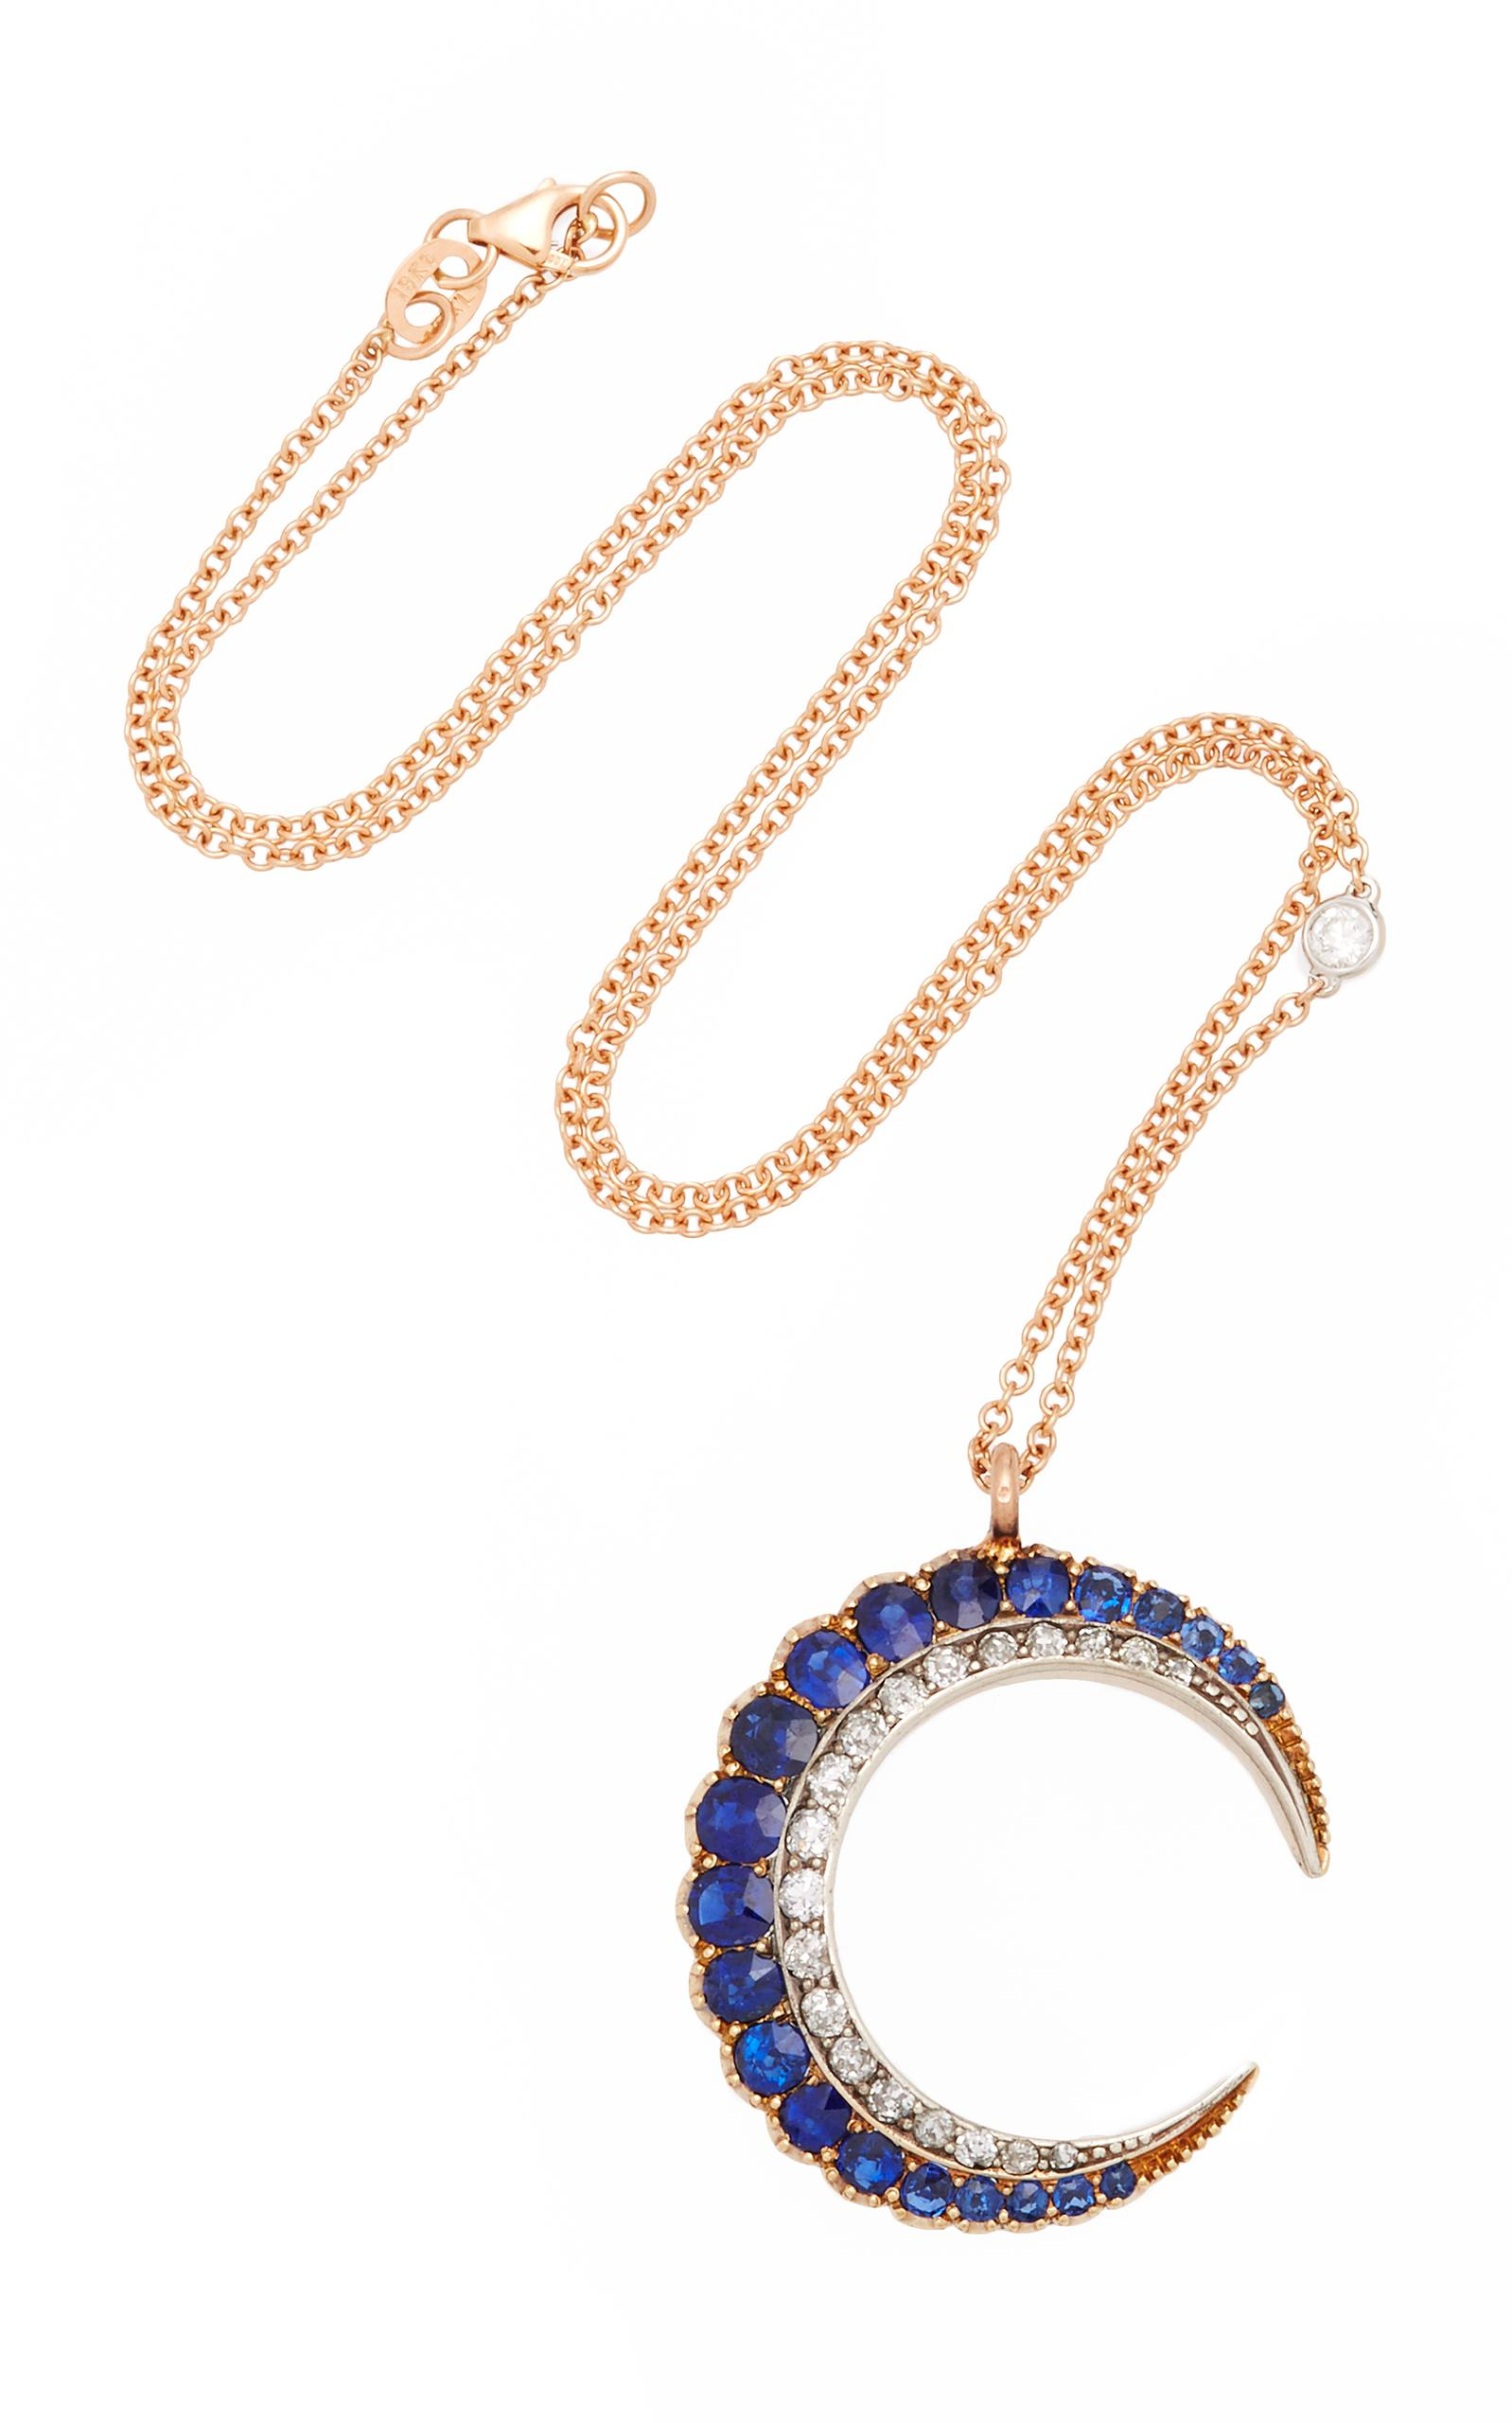 652c9fb18551 Toni chloë goutal one of a kind victoria ii crescent necklace jpg 1598x2560  Crescent chloe goutal